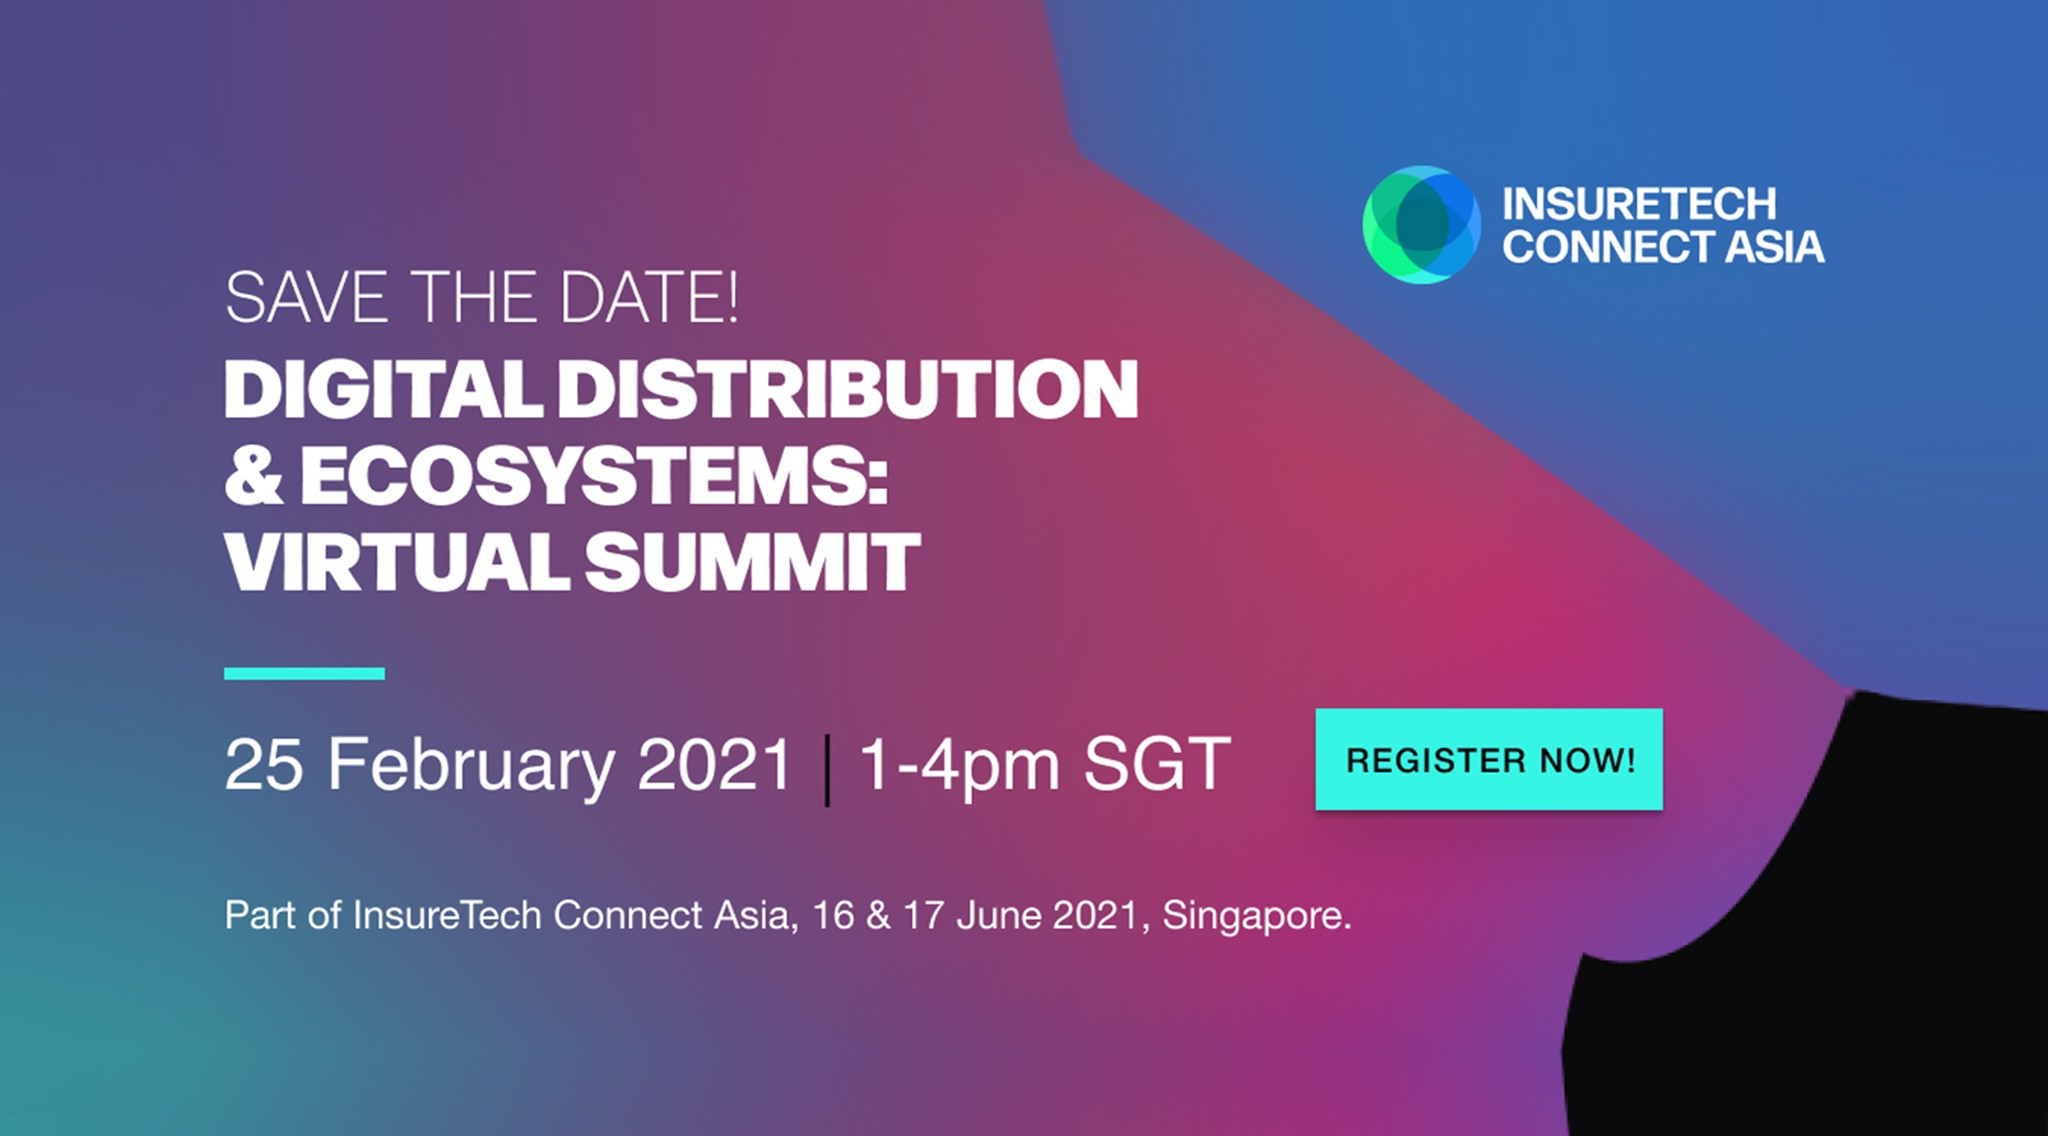 InsureTech Connect Asia Launches Its Digital Distribution & Ecosystems Summit.